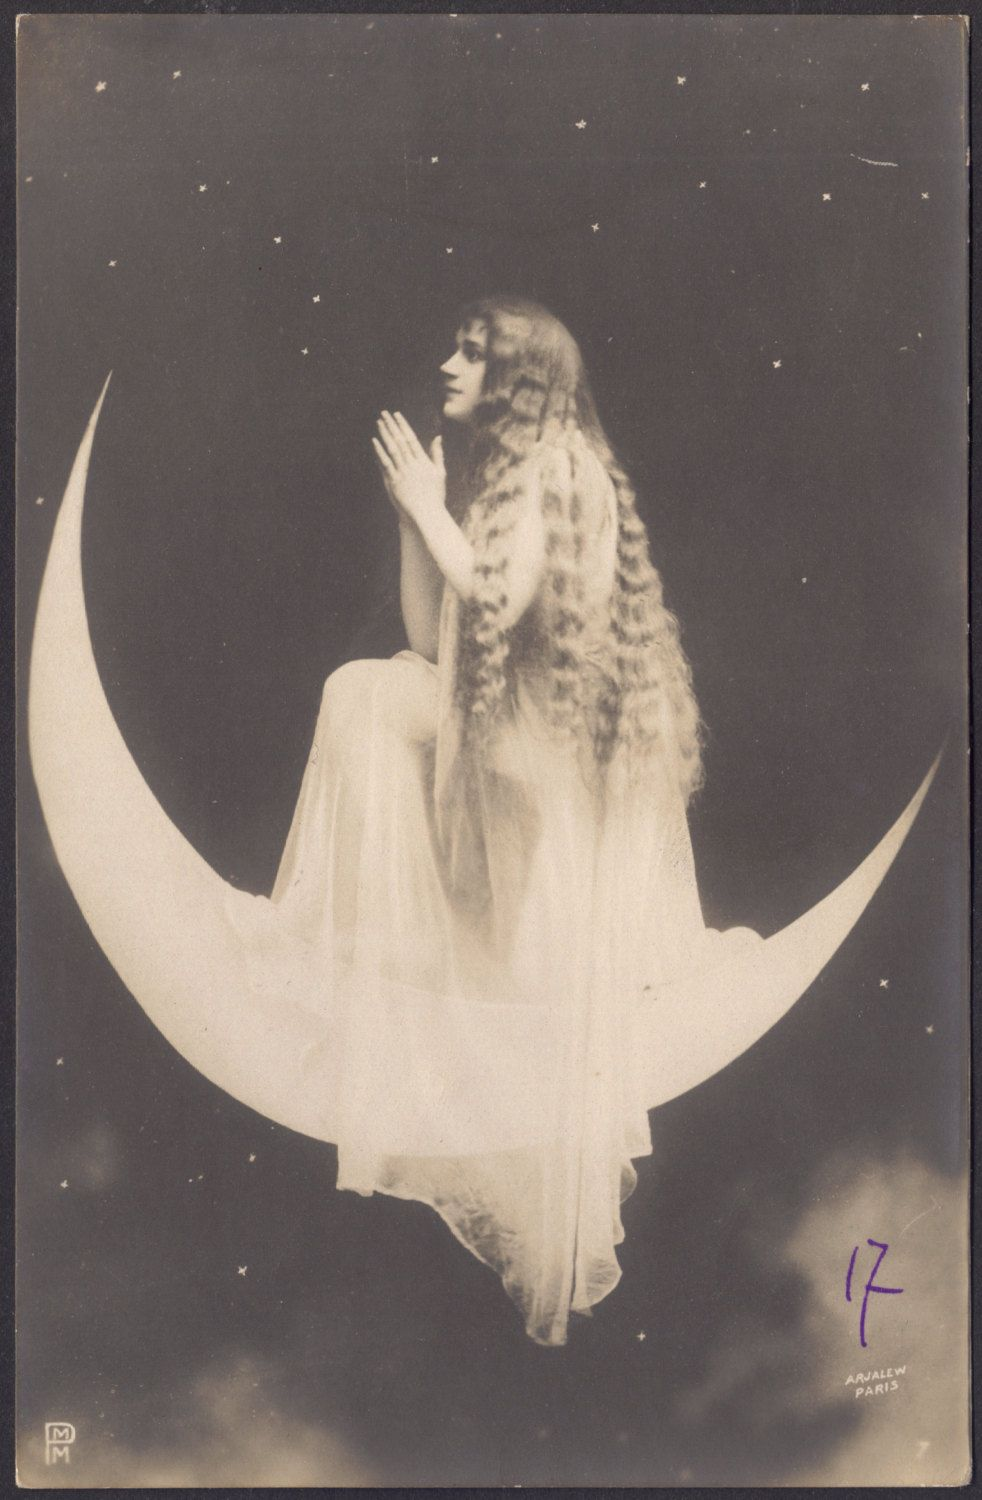 Vintage paper moon with woman praying